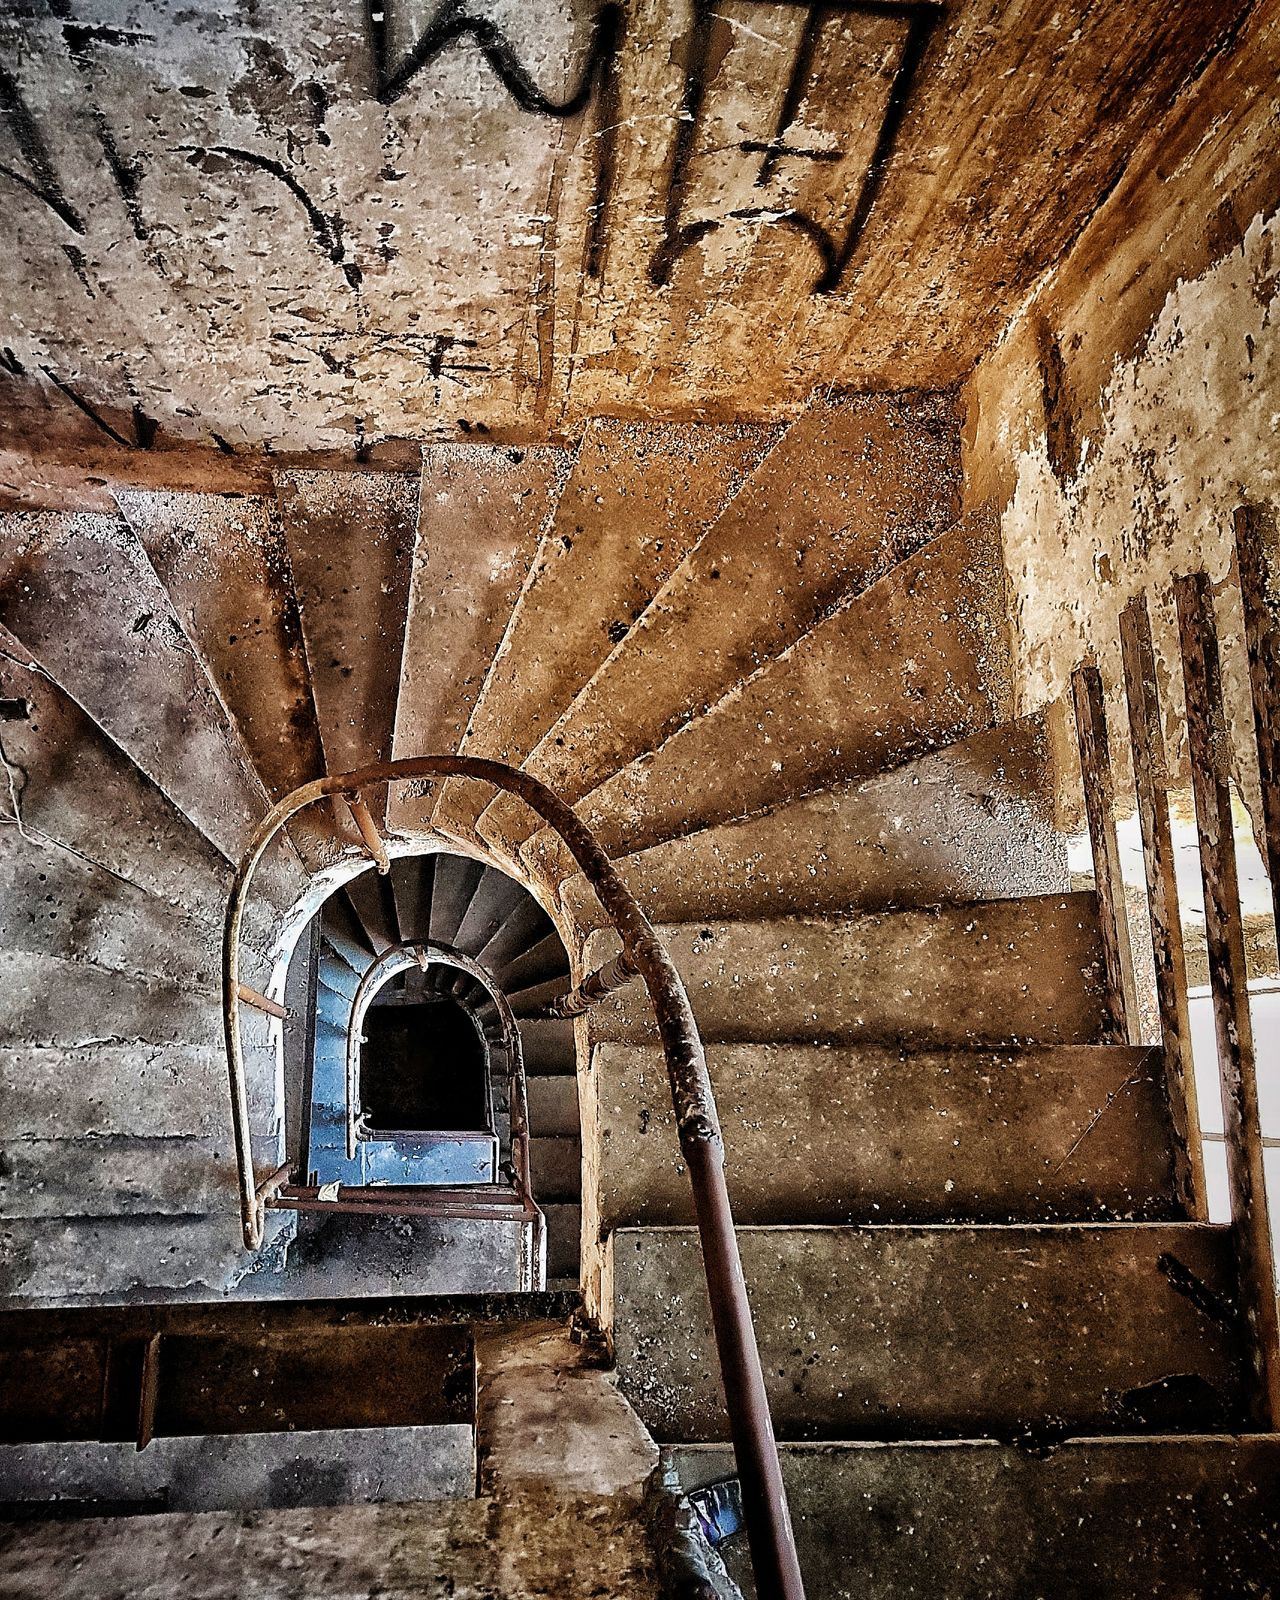 The Architect - 2017 EyeEm Awards Steps Staircase Built Structure Steps And Staircases Architecture Arch Day Indoors  No People Escalators And Staircases High Angle View São Paulo Patterns & Textures Documentary Photography Architecture Building Structures Damaged Old Buildings Urbex Rusty